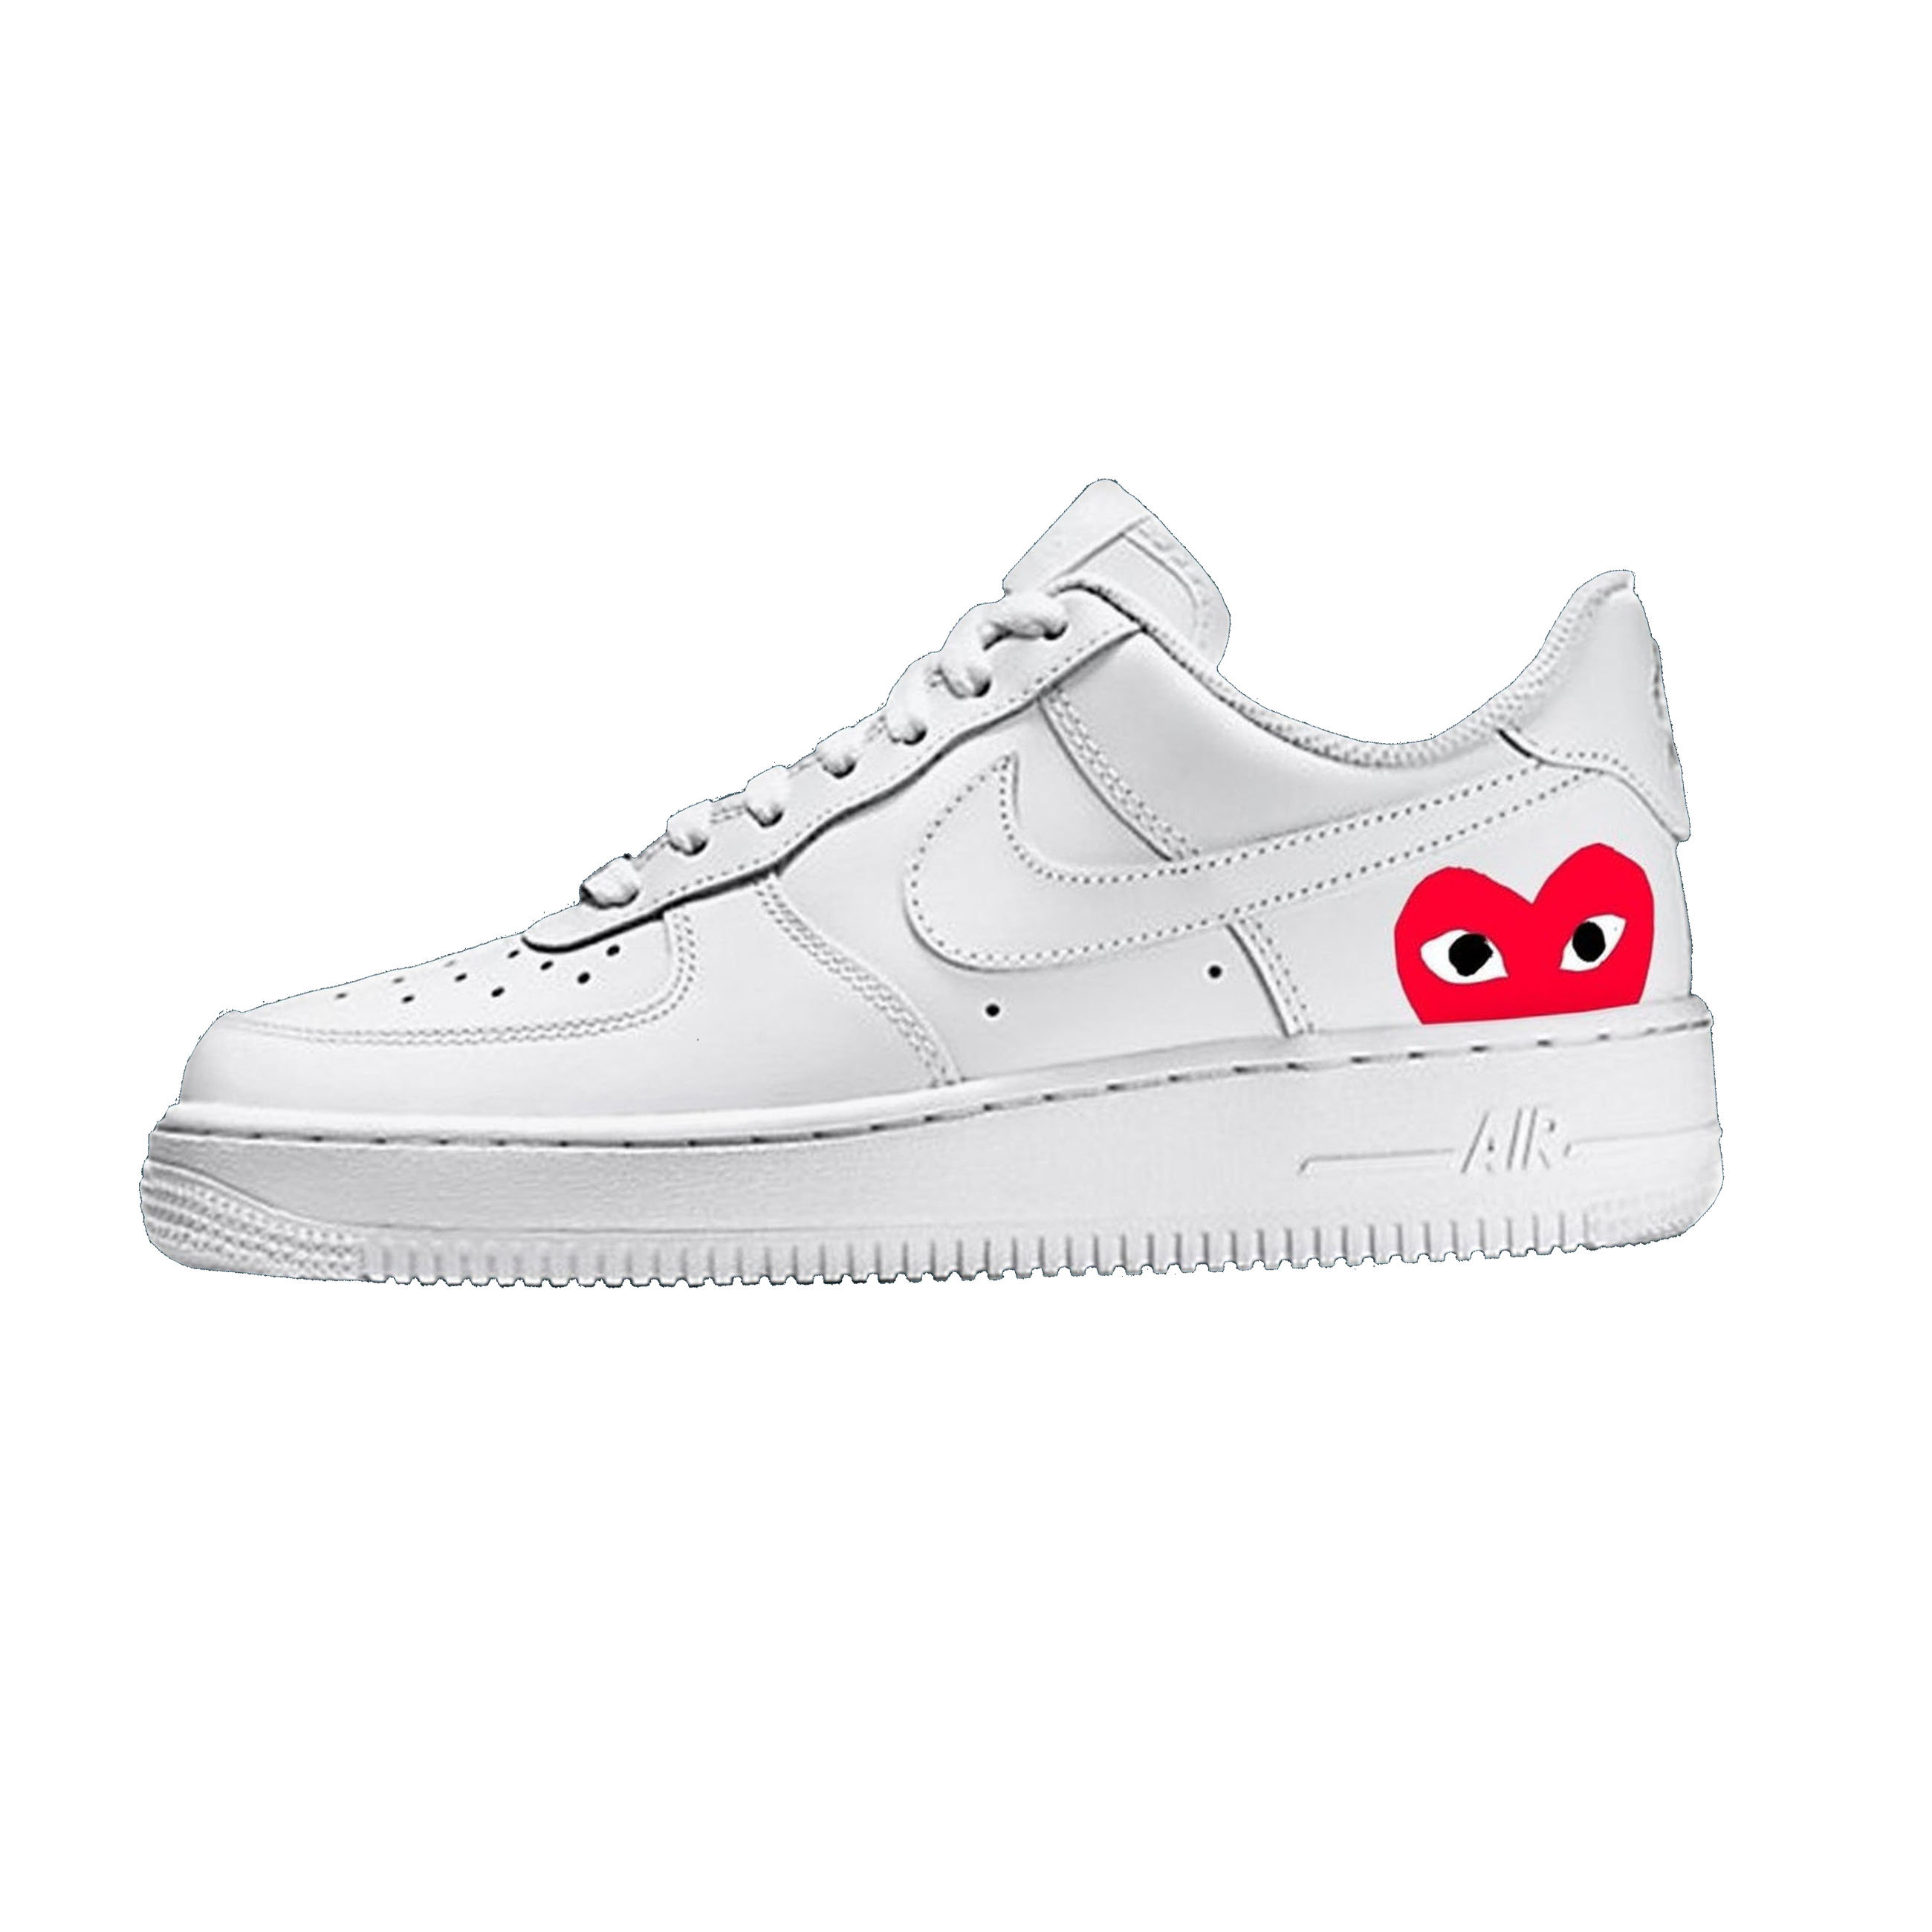 Custom Air 1 Cdg Force Nike iuXOkPZ